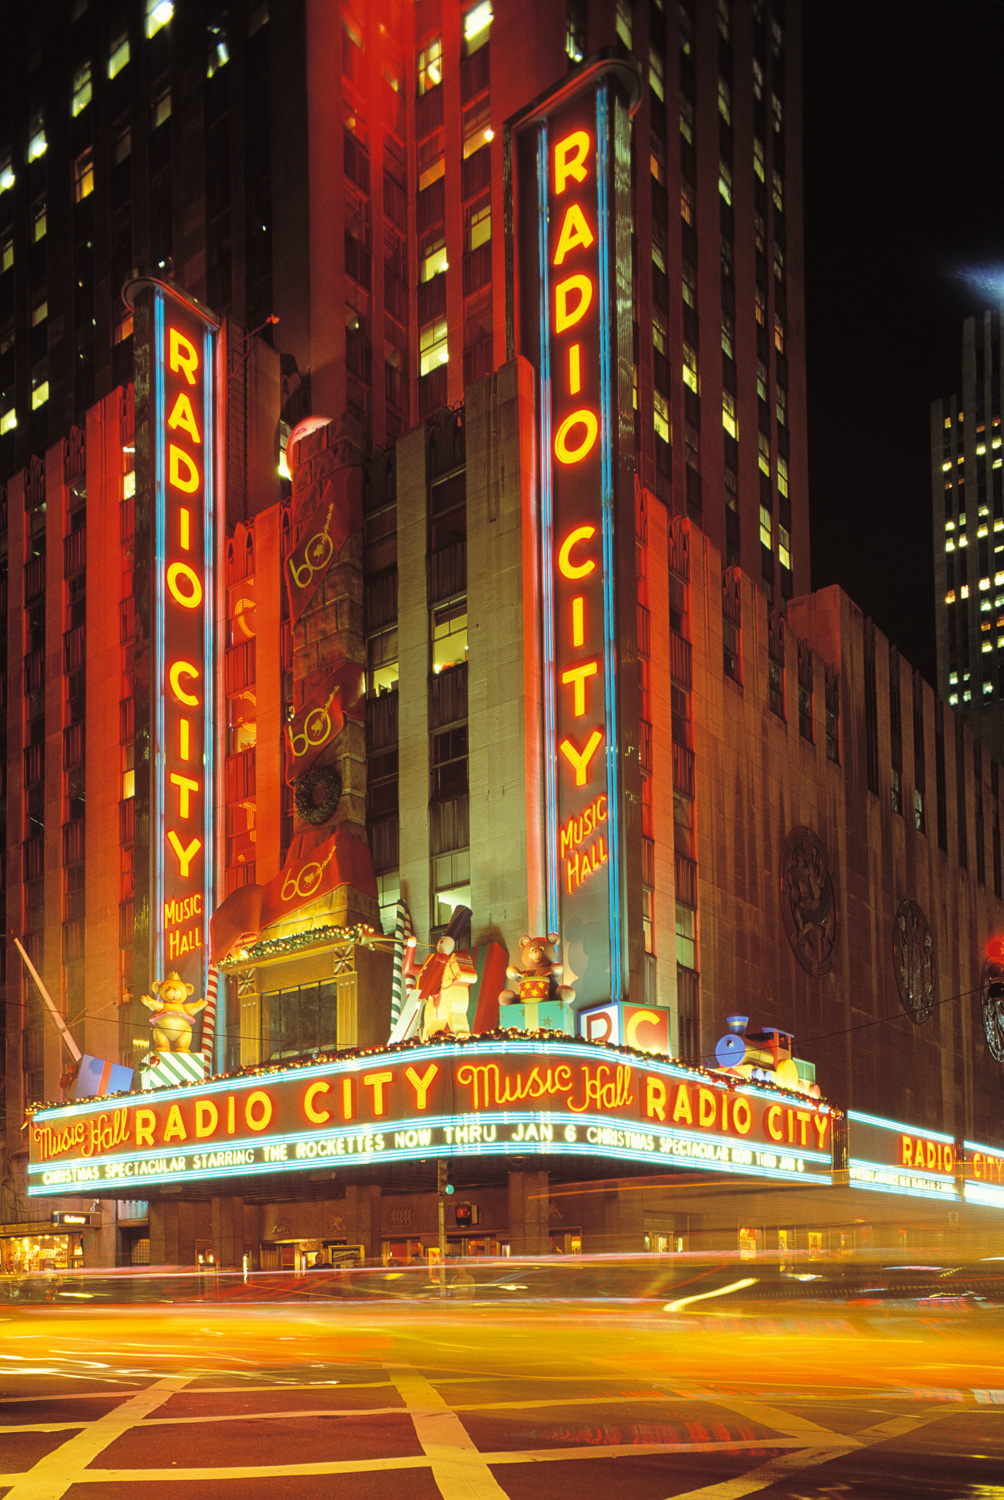 Radio City Music Hall, Manhattan, New York